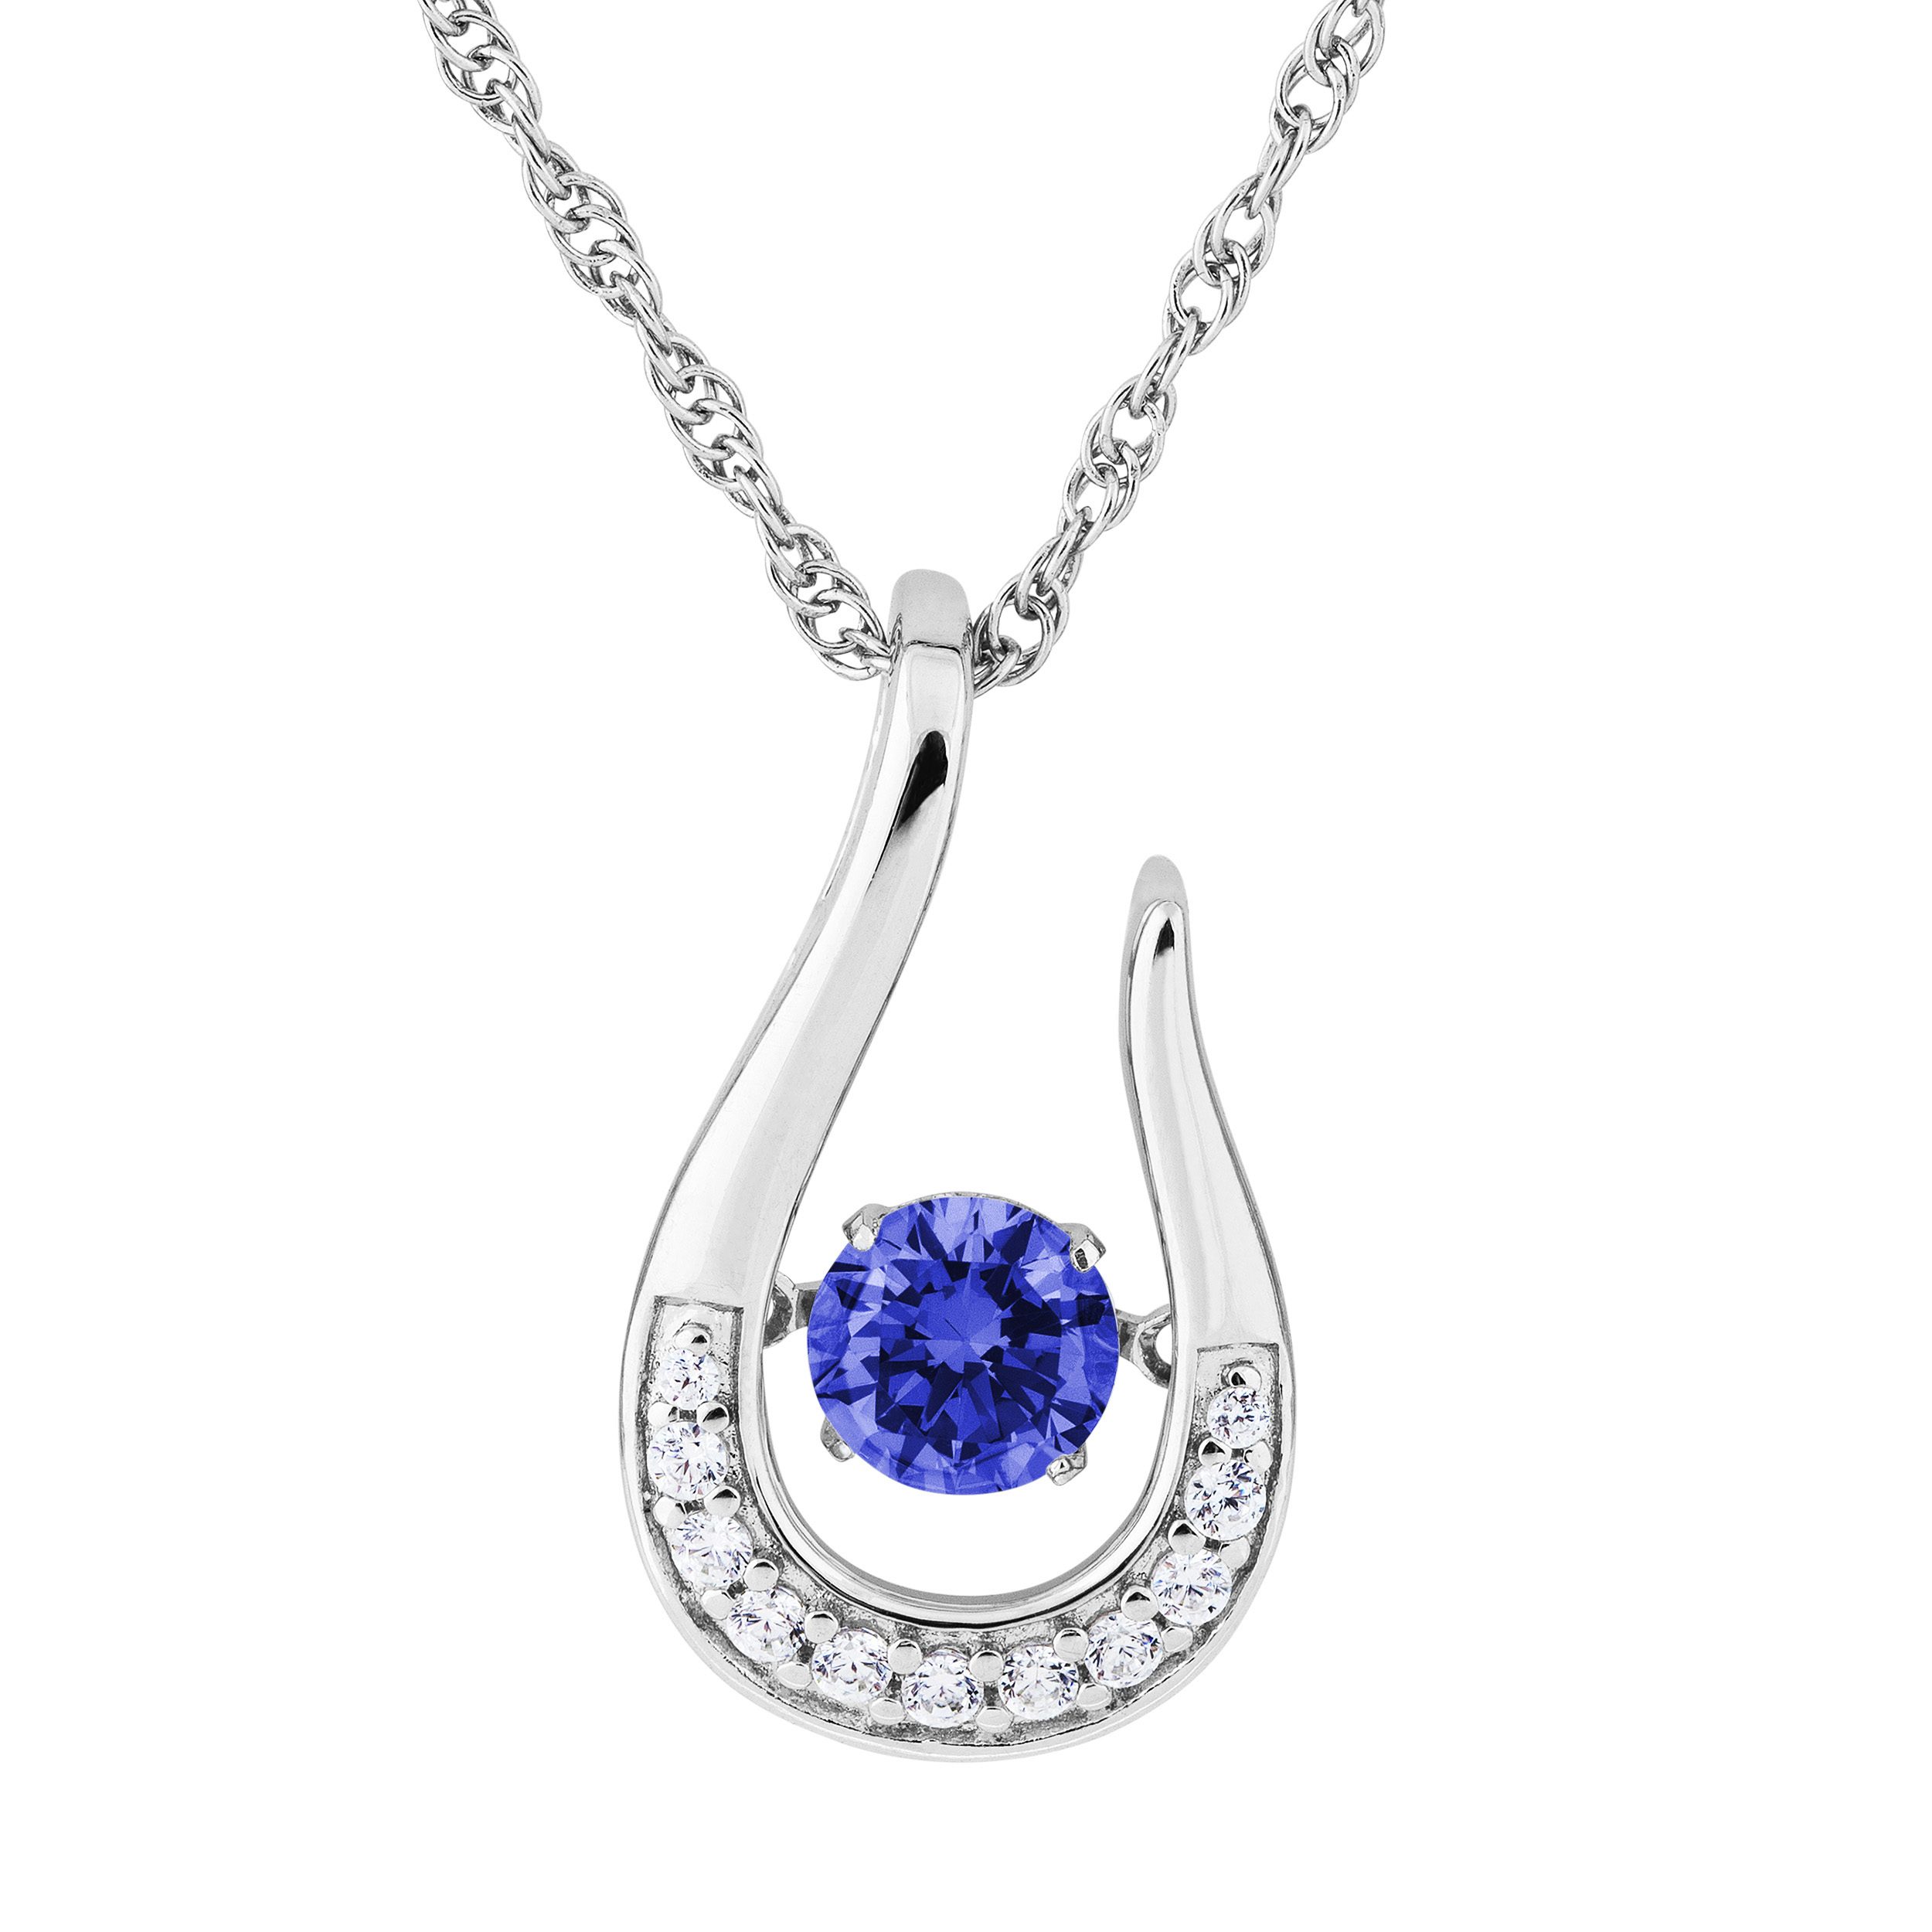 Twinkling Blue CZ Silver Pendent